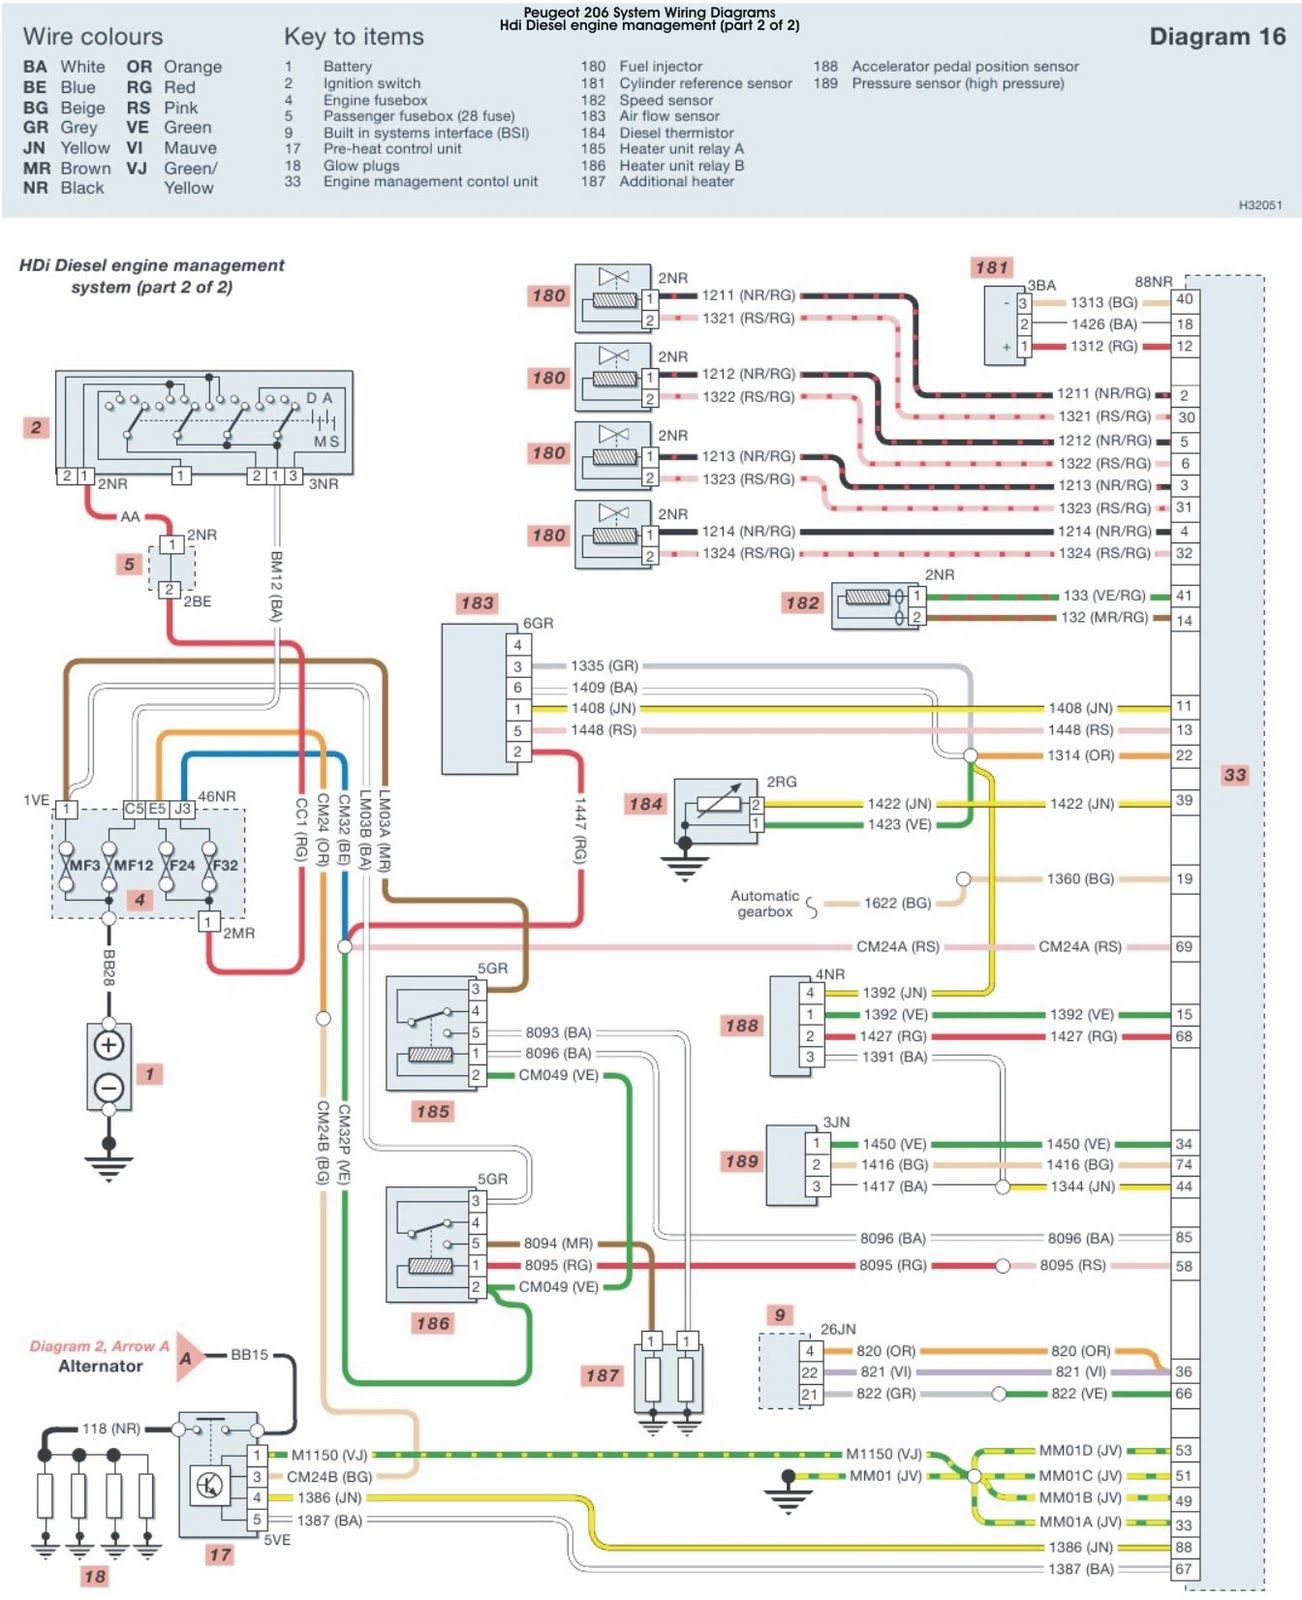 73e2c Peugeot 306 Immobiliser Wiring Diagram Peugeot Electrical Wiring Diagram Diagram